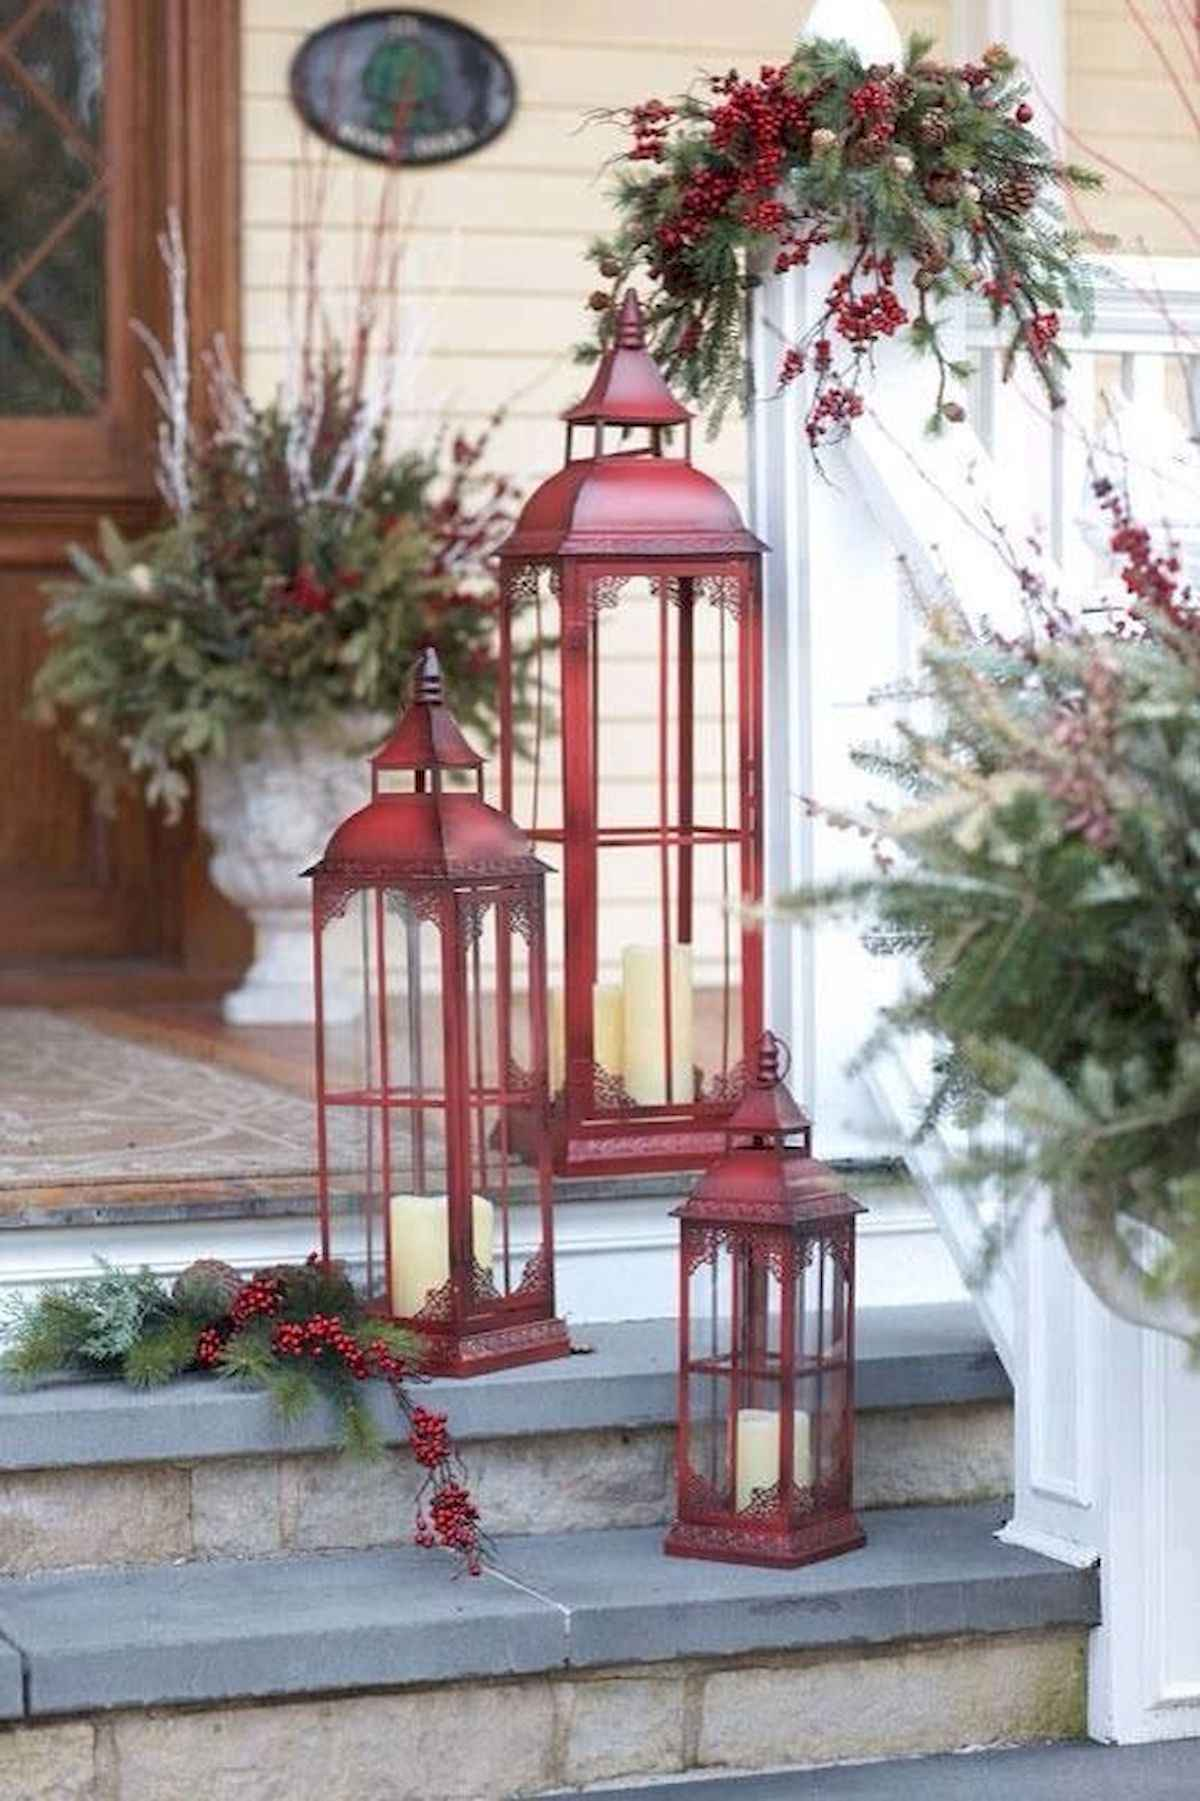 50 stunning front porch christmas lights decorations ideas (41)